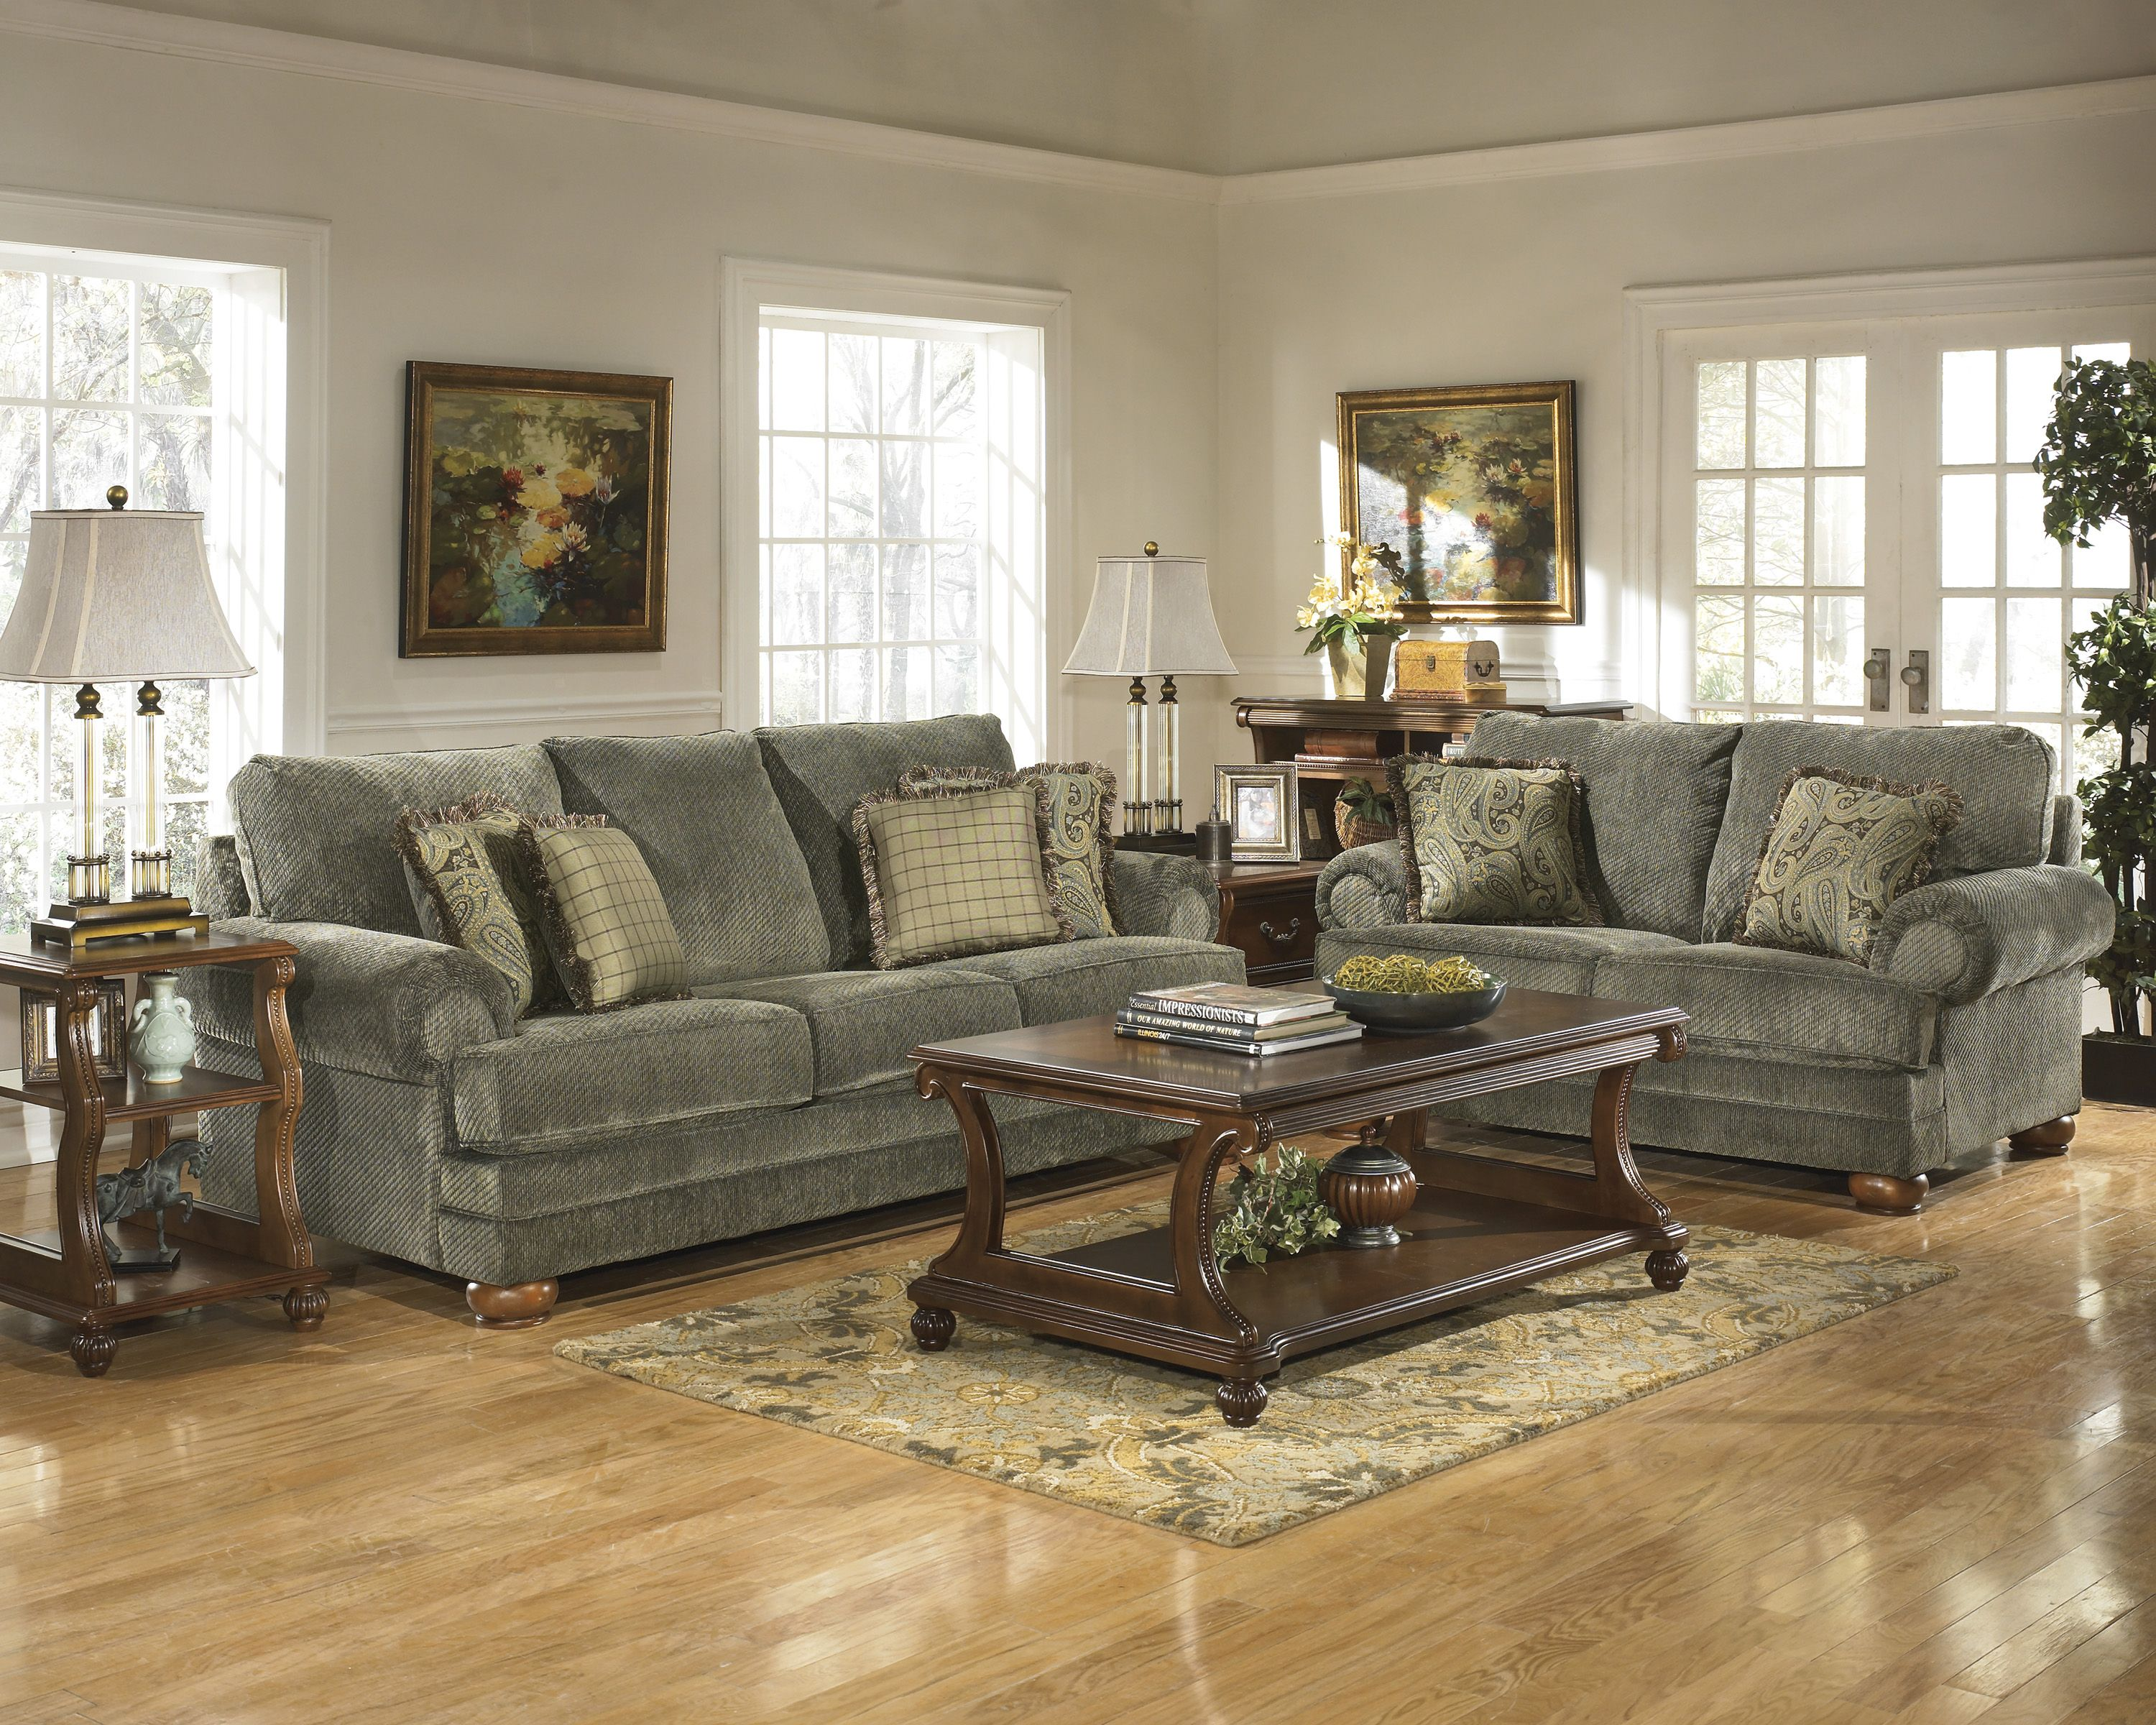 ashley furniture montgomery sofa cindy crawford sectional mocha living room set